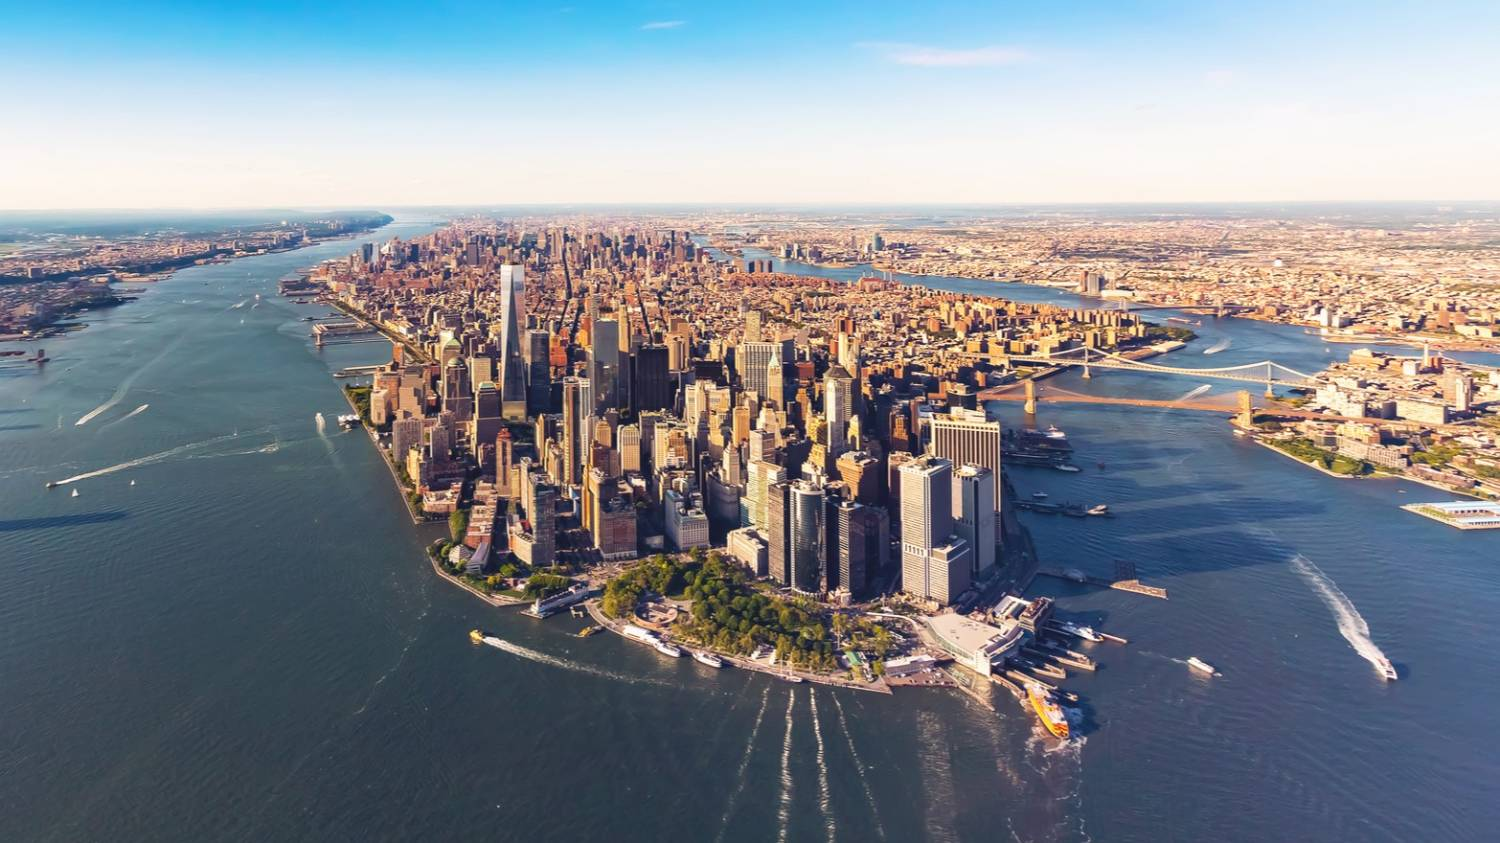 New York Harbor - Things To Do In New York City